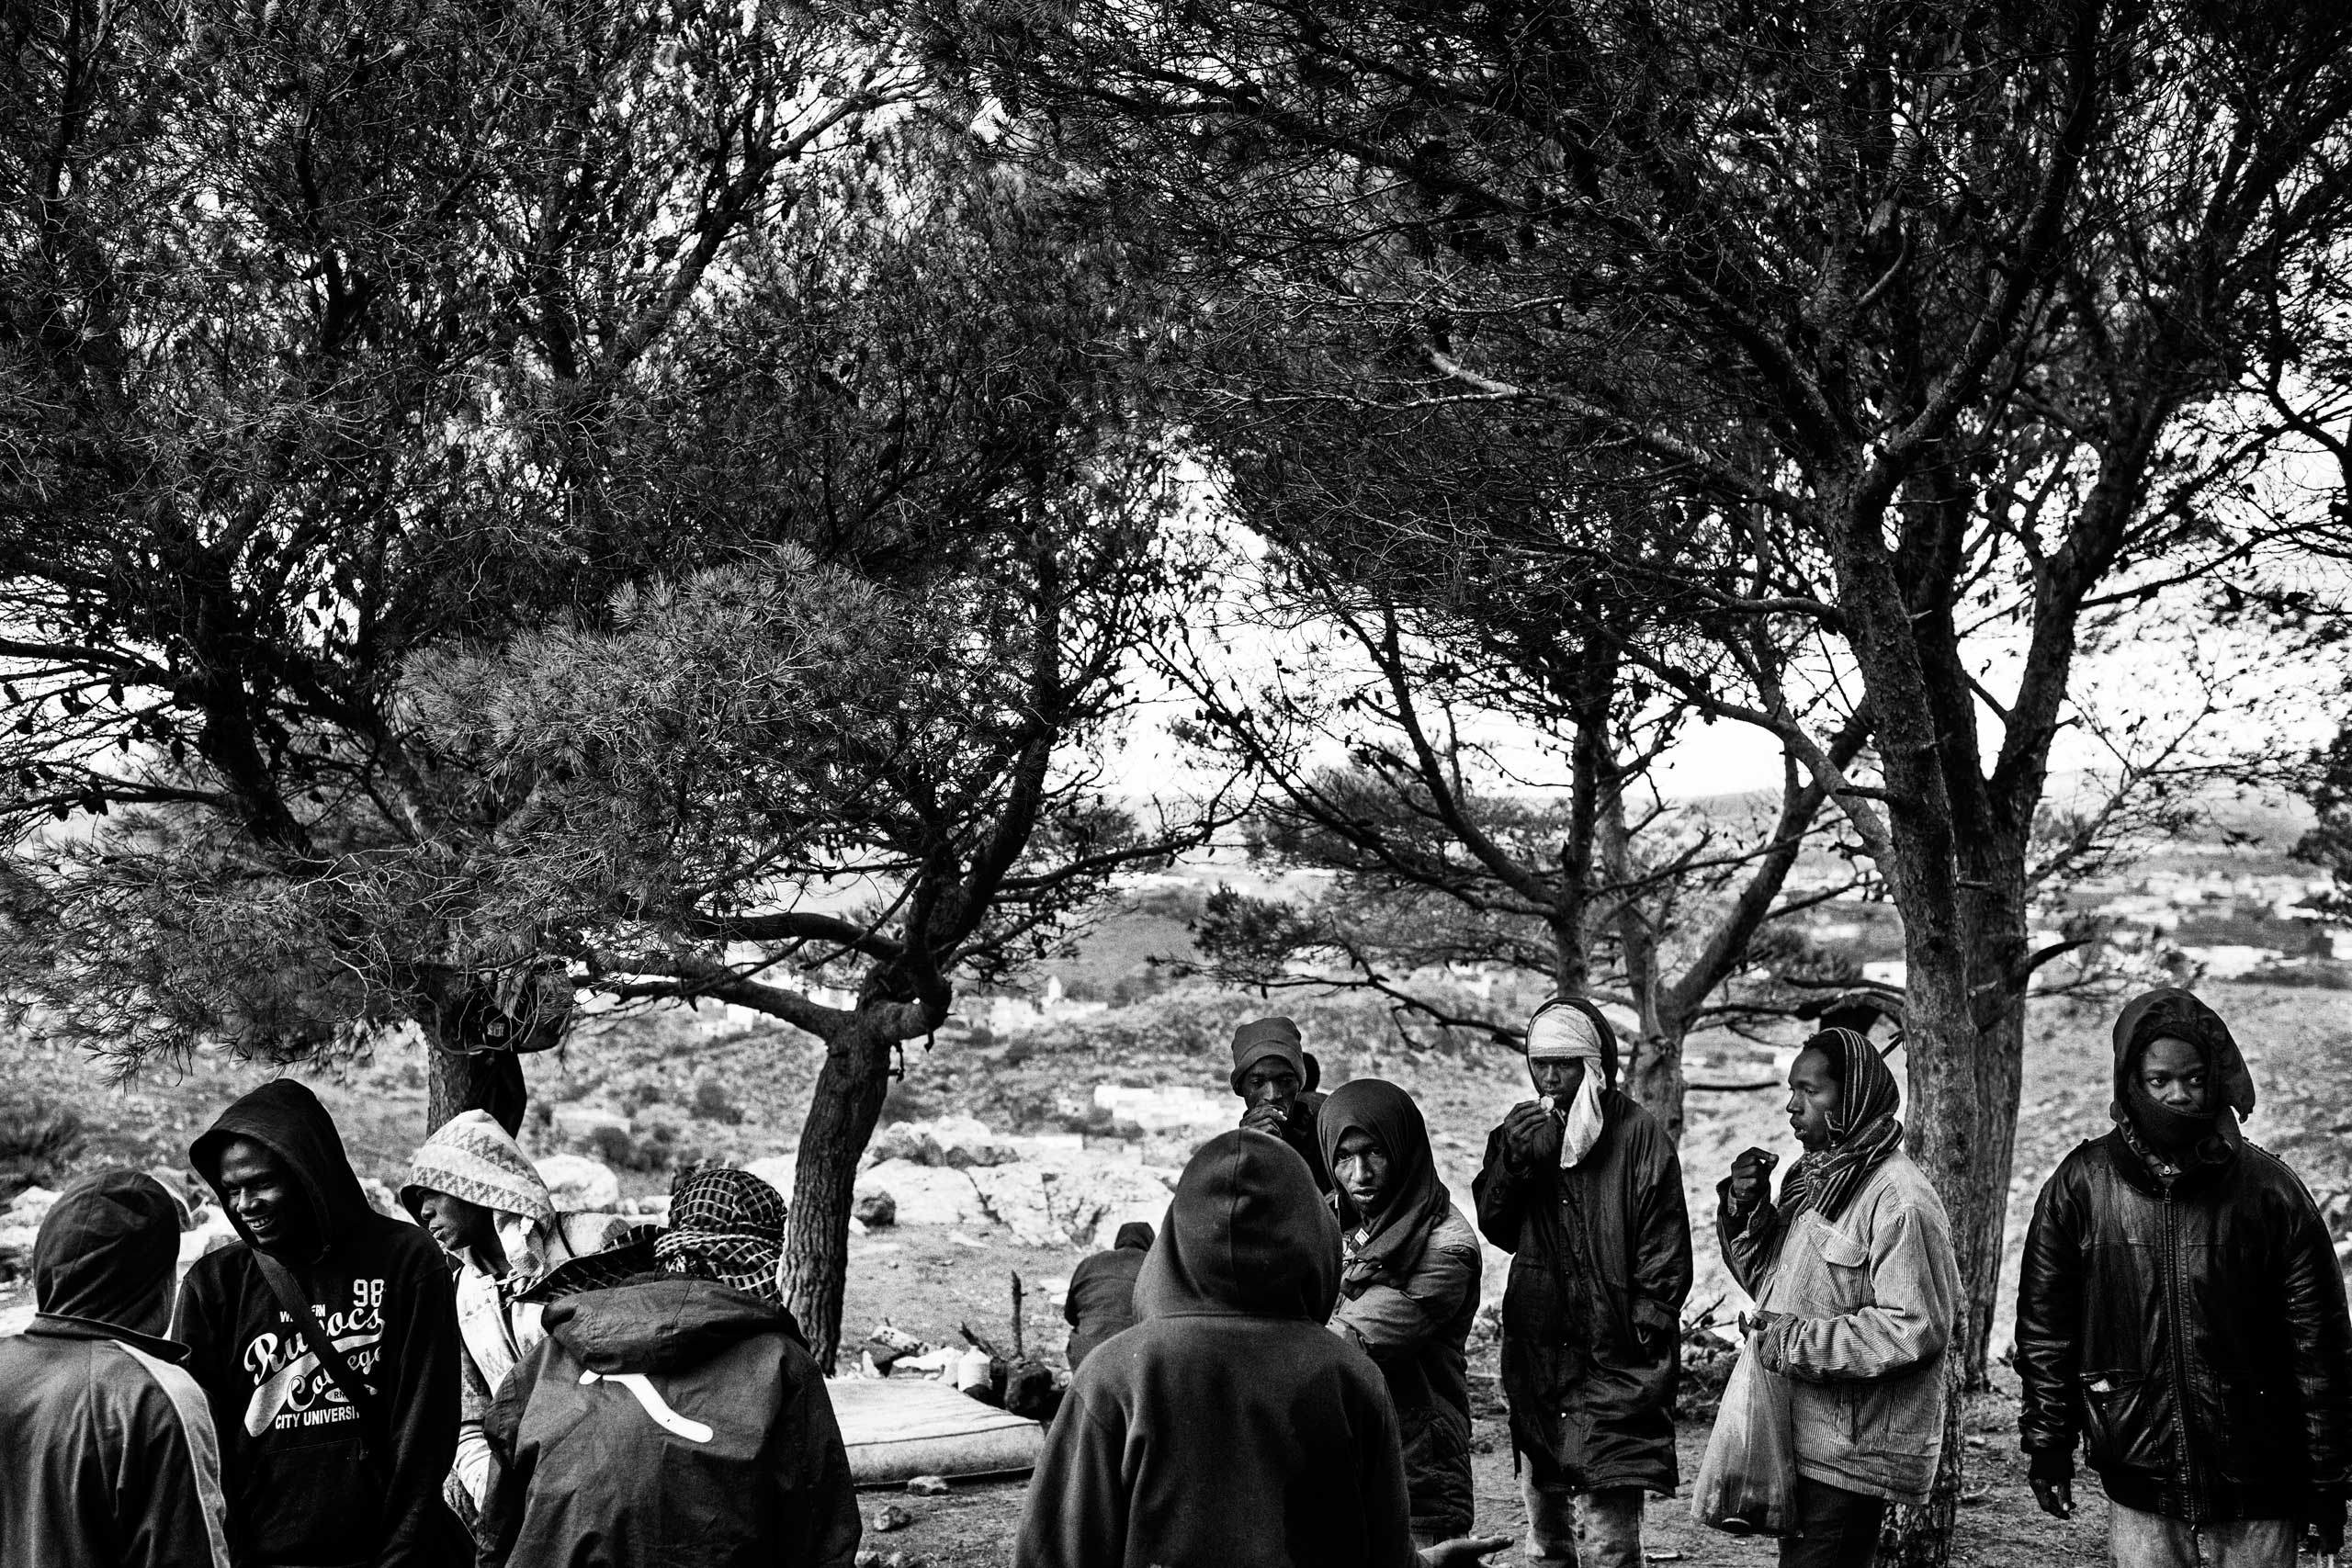 Migrants from Senegal  and Guinea gather at their campsite in Gurugu mountain in Nador, Morocco in 2012.